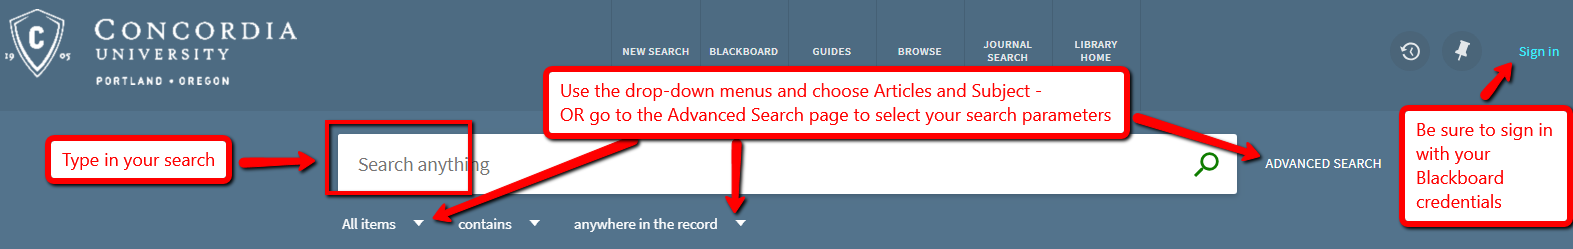 Screenshot of catalog search options and drop down menus